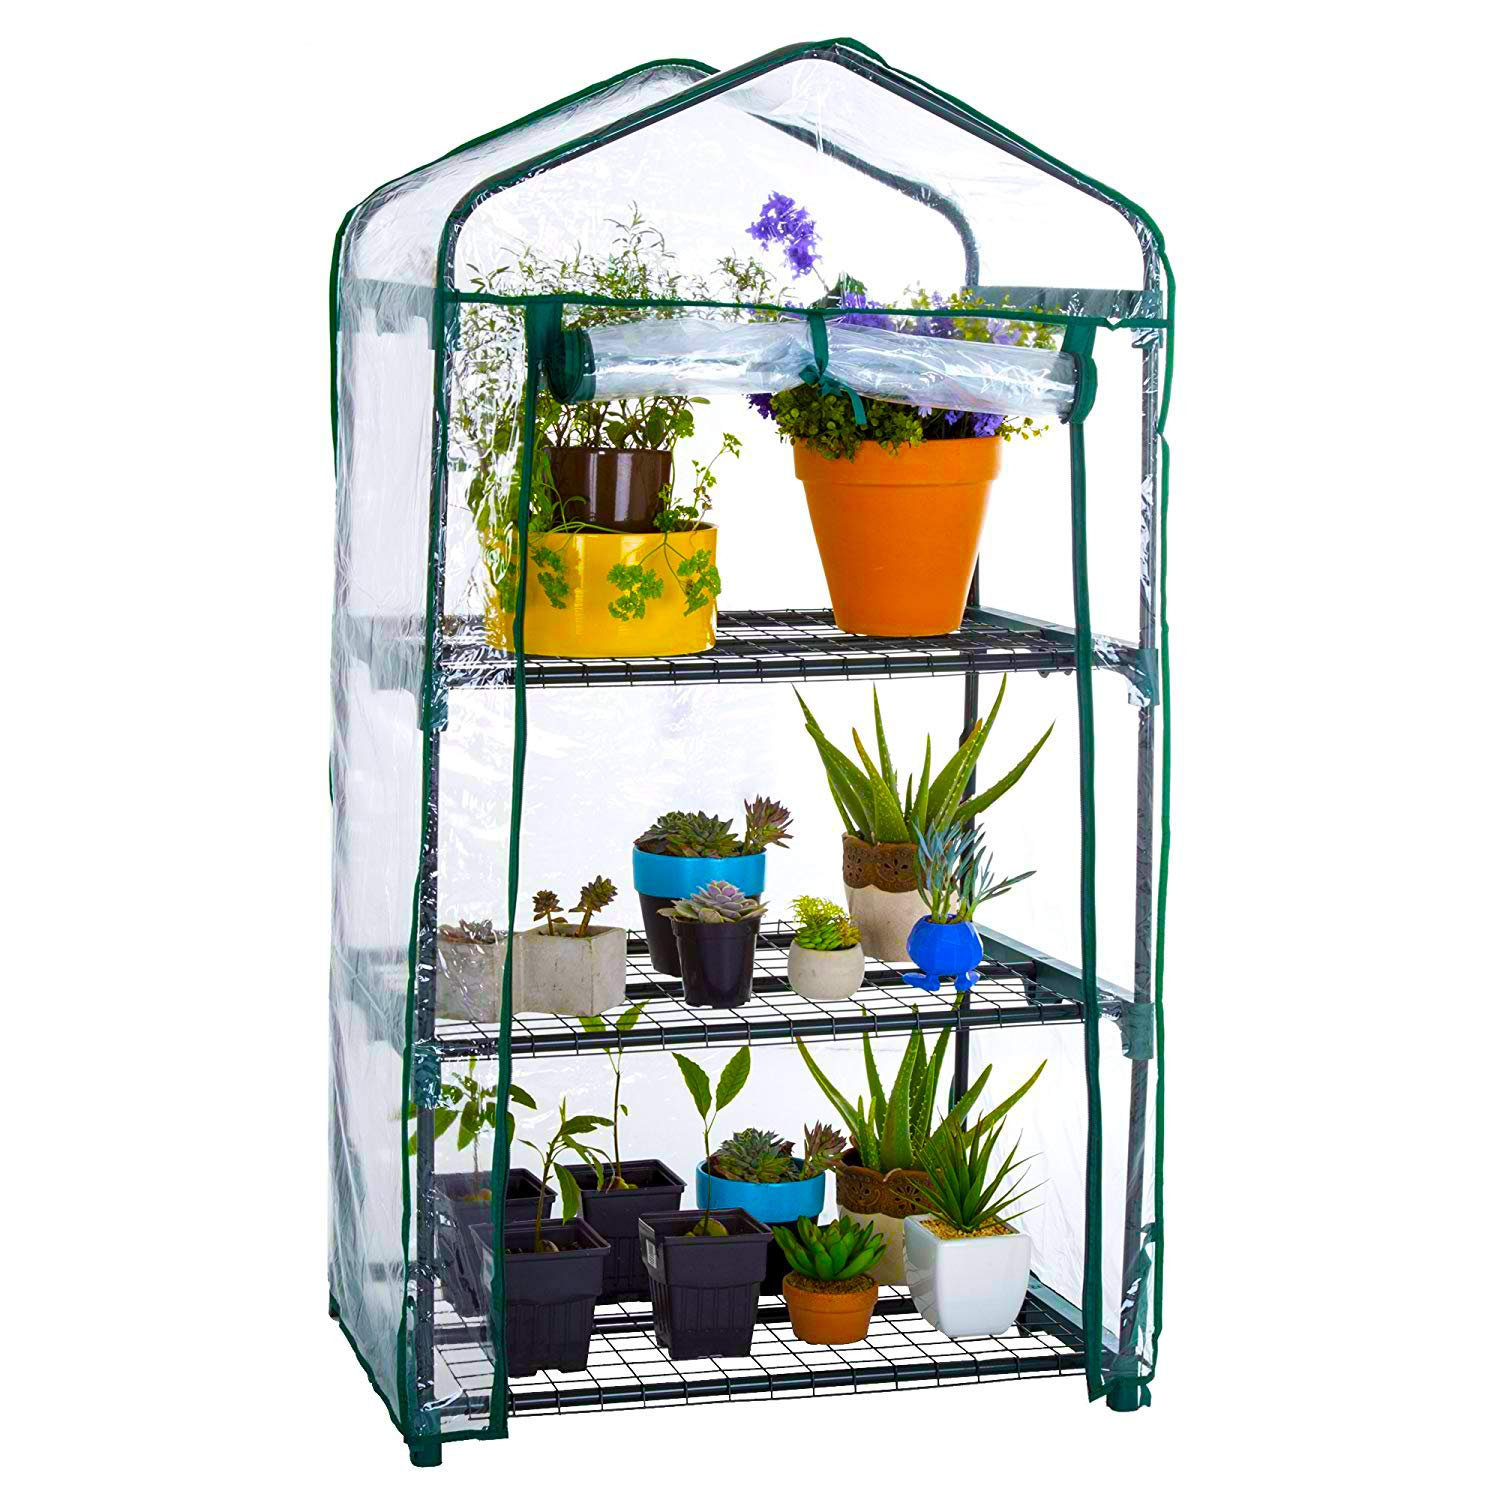 WZTO 3-Tier Mini Greenhouse, Portable Mini Garden House with Warm Clear PVC Cover for Indoor/Outdoor Growing Seeds & Seedlings, Tending Potted Plants Flower Zipper Roll Up Front